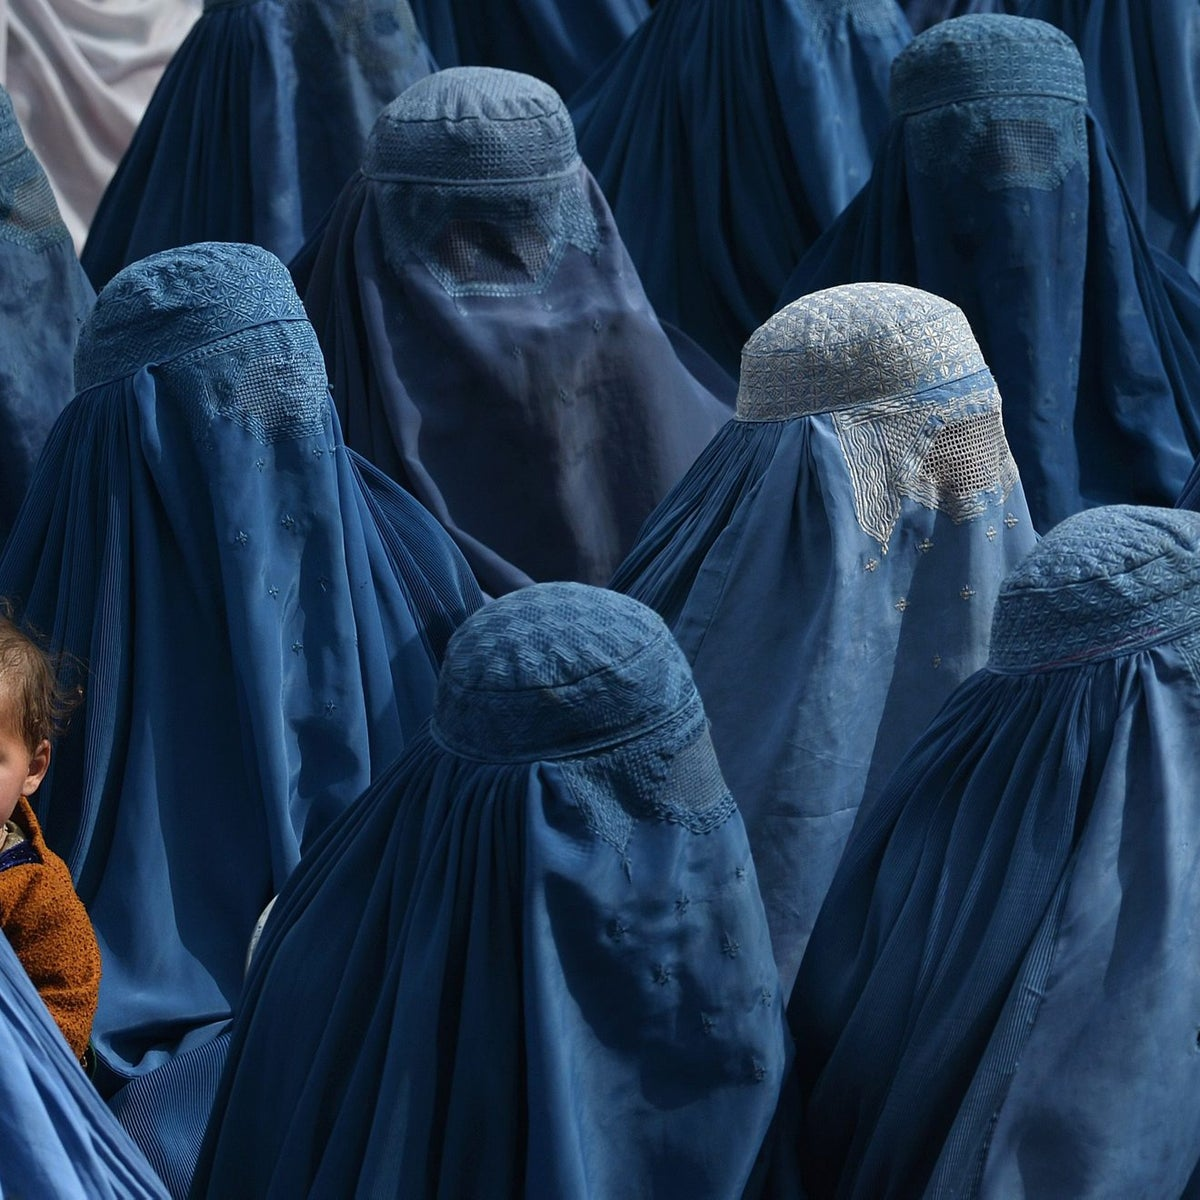 An Afghan woman holds her baby as she and supporters attend the election rally of Afghan presidential candidate Abdullah Abdullah in Jalalabad, February 18, 2014.